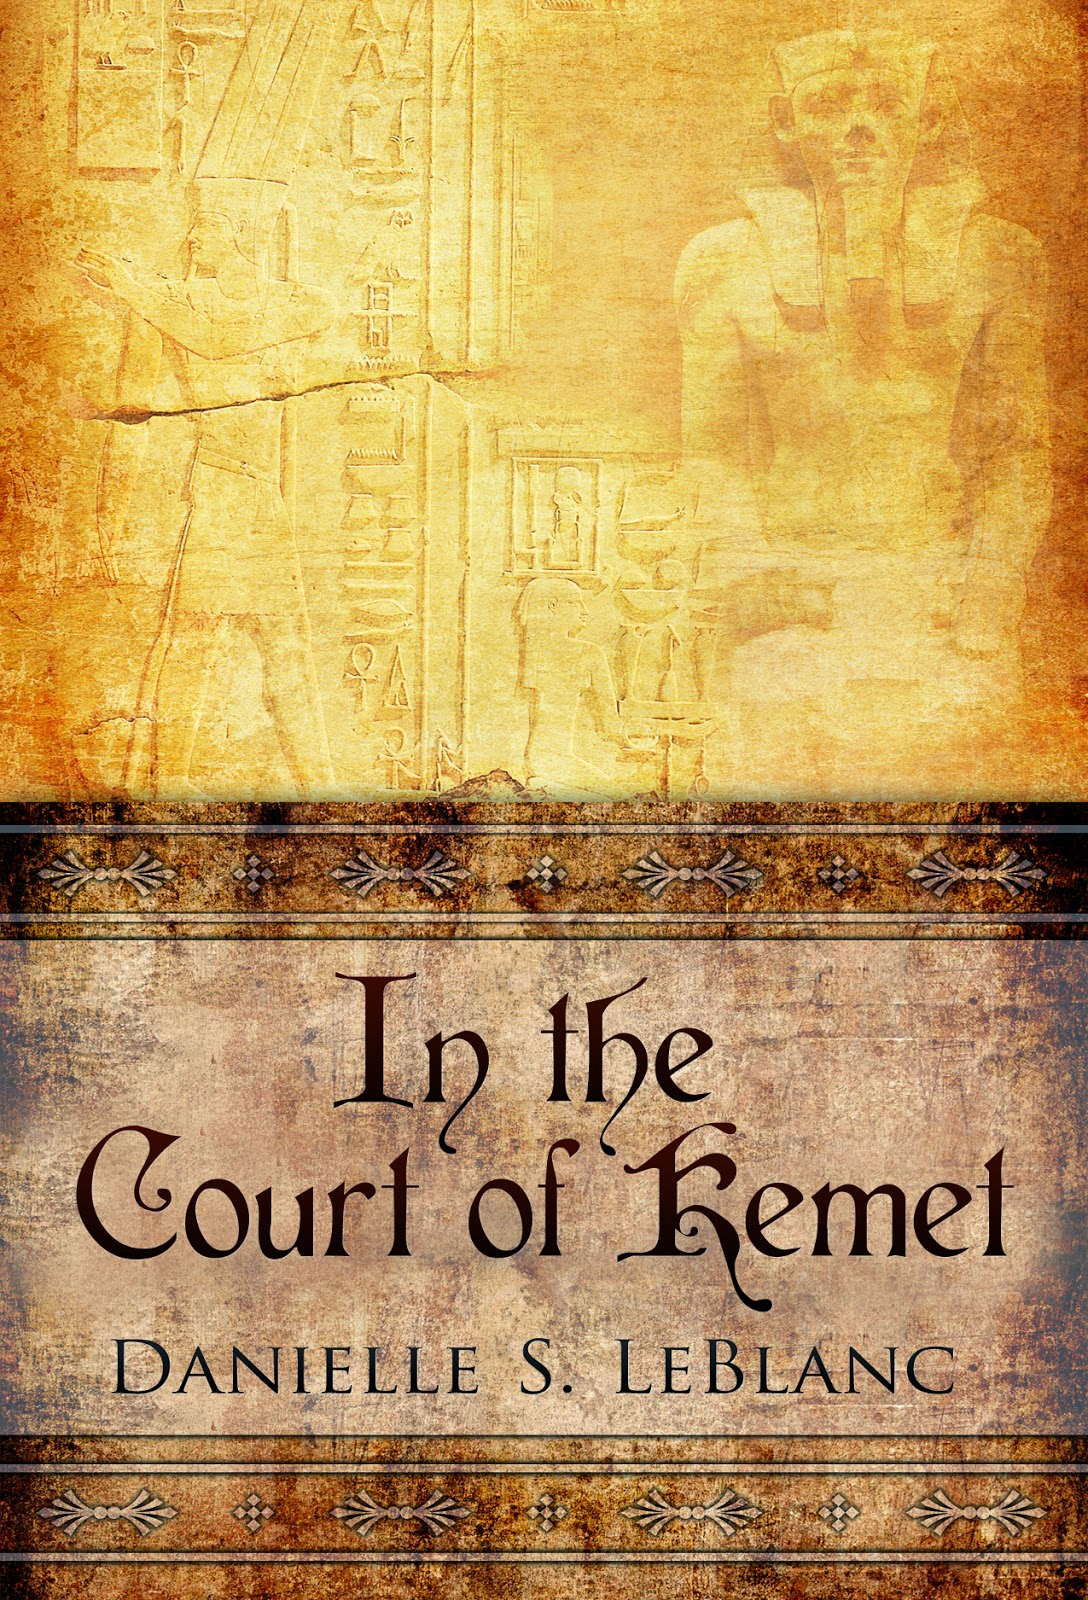 http://www.amazon.com/Court-Kemet-Ancient-Egyptian-Romances-ebook/dp/B00NW6EX0C/ref=sr_1_1?ie=UTF8&qid=1412361838&sr=8-1&keywords=In+the+Court+of+Kemet